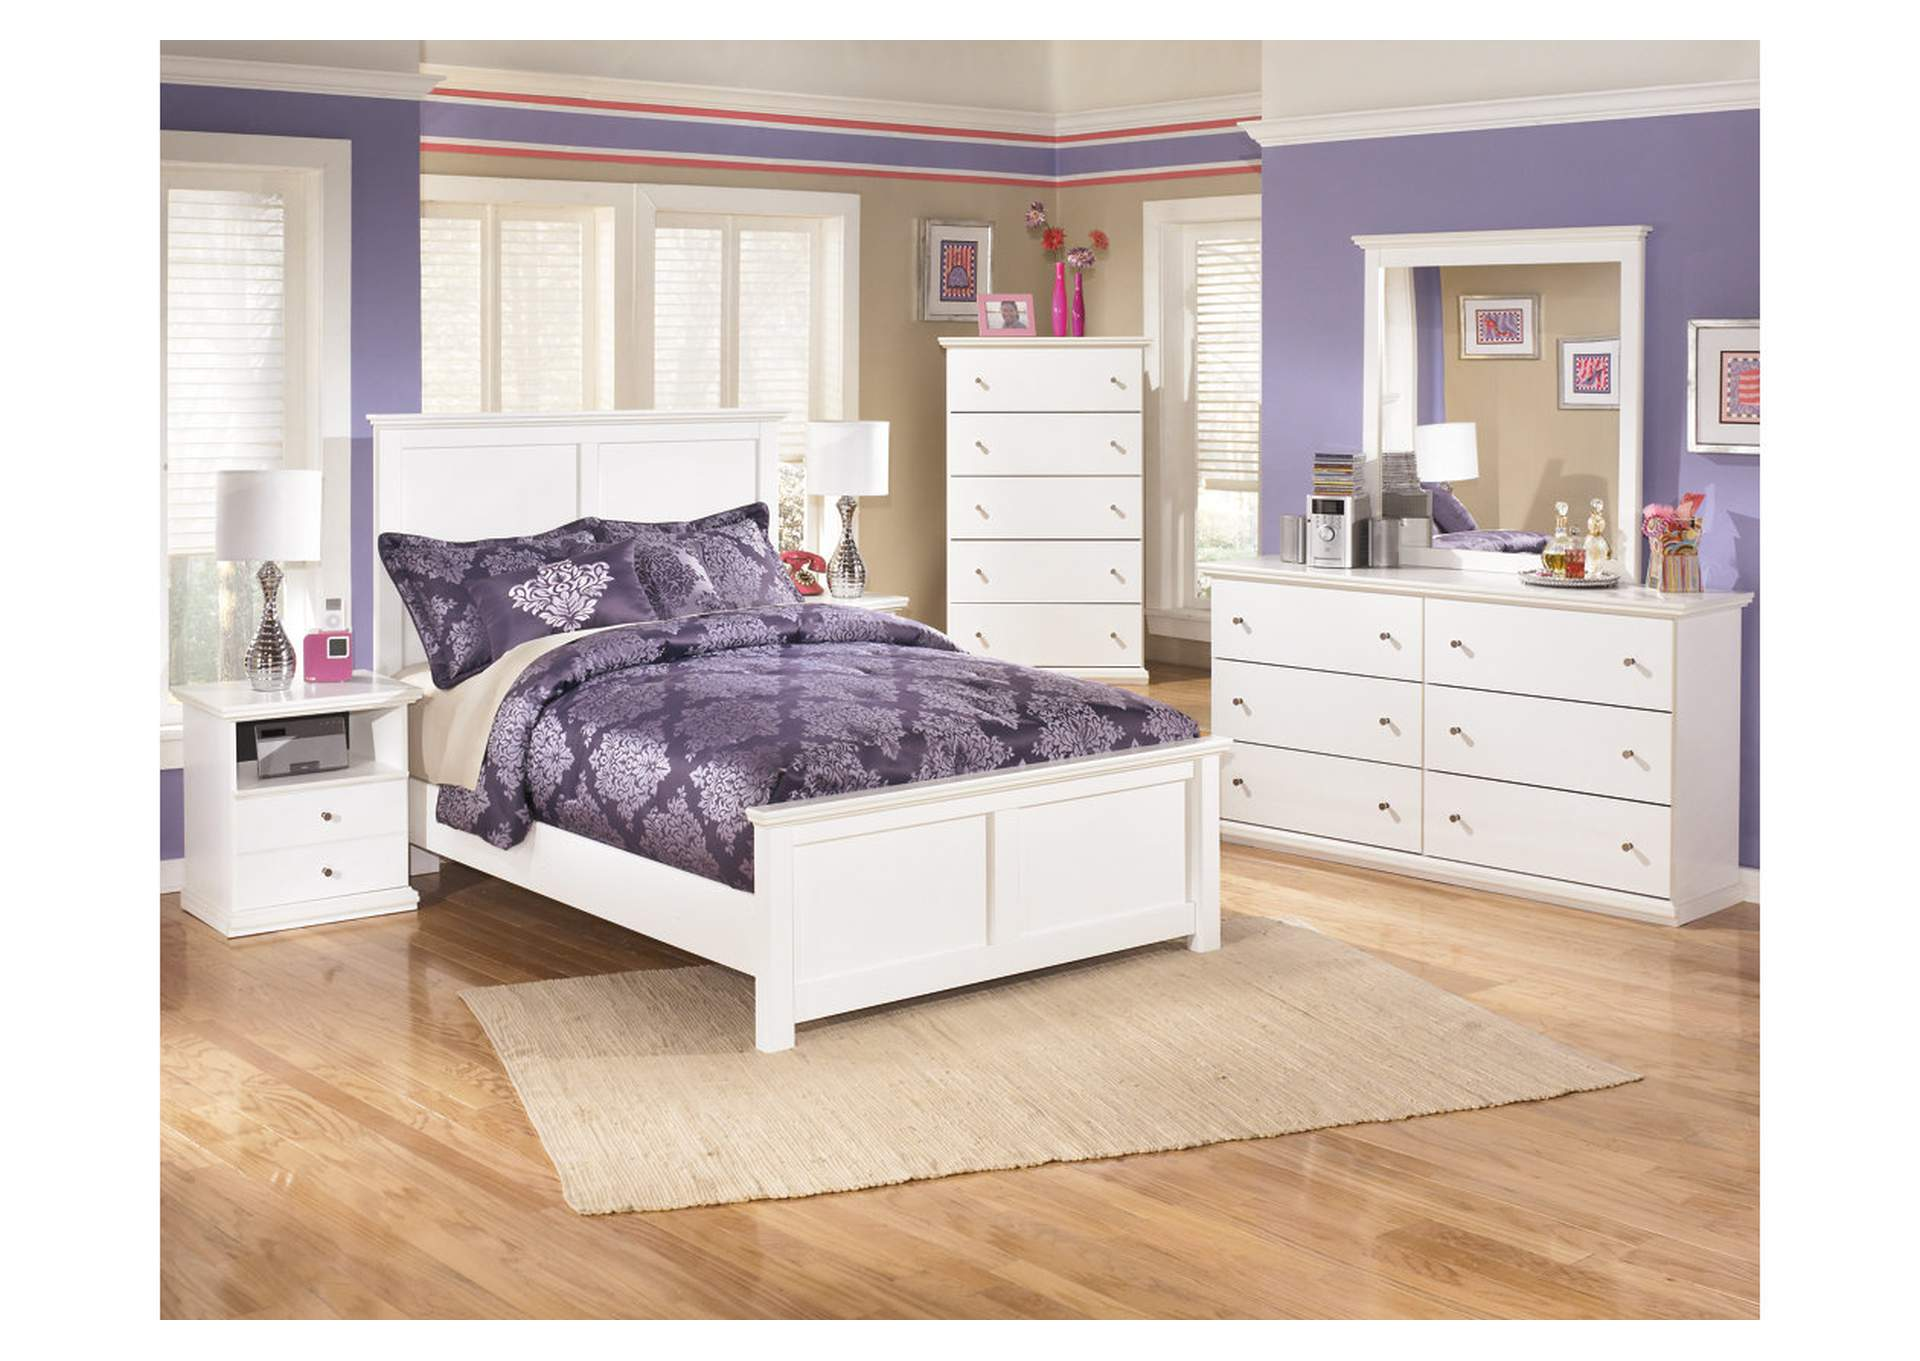 Bostwick Shoals Full Panel Bed w/Dresser, Mirror & Nightstand,Signature Design By Ashley